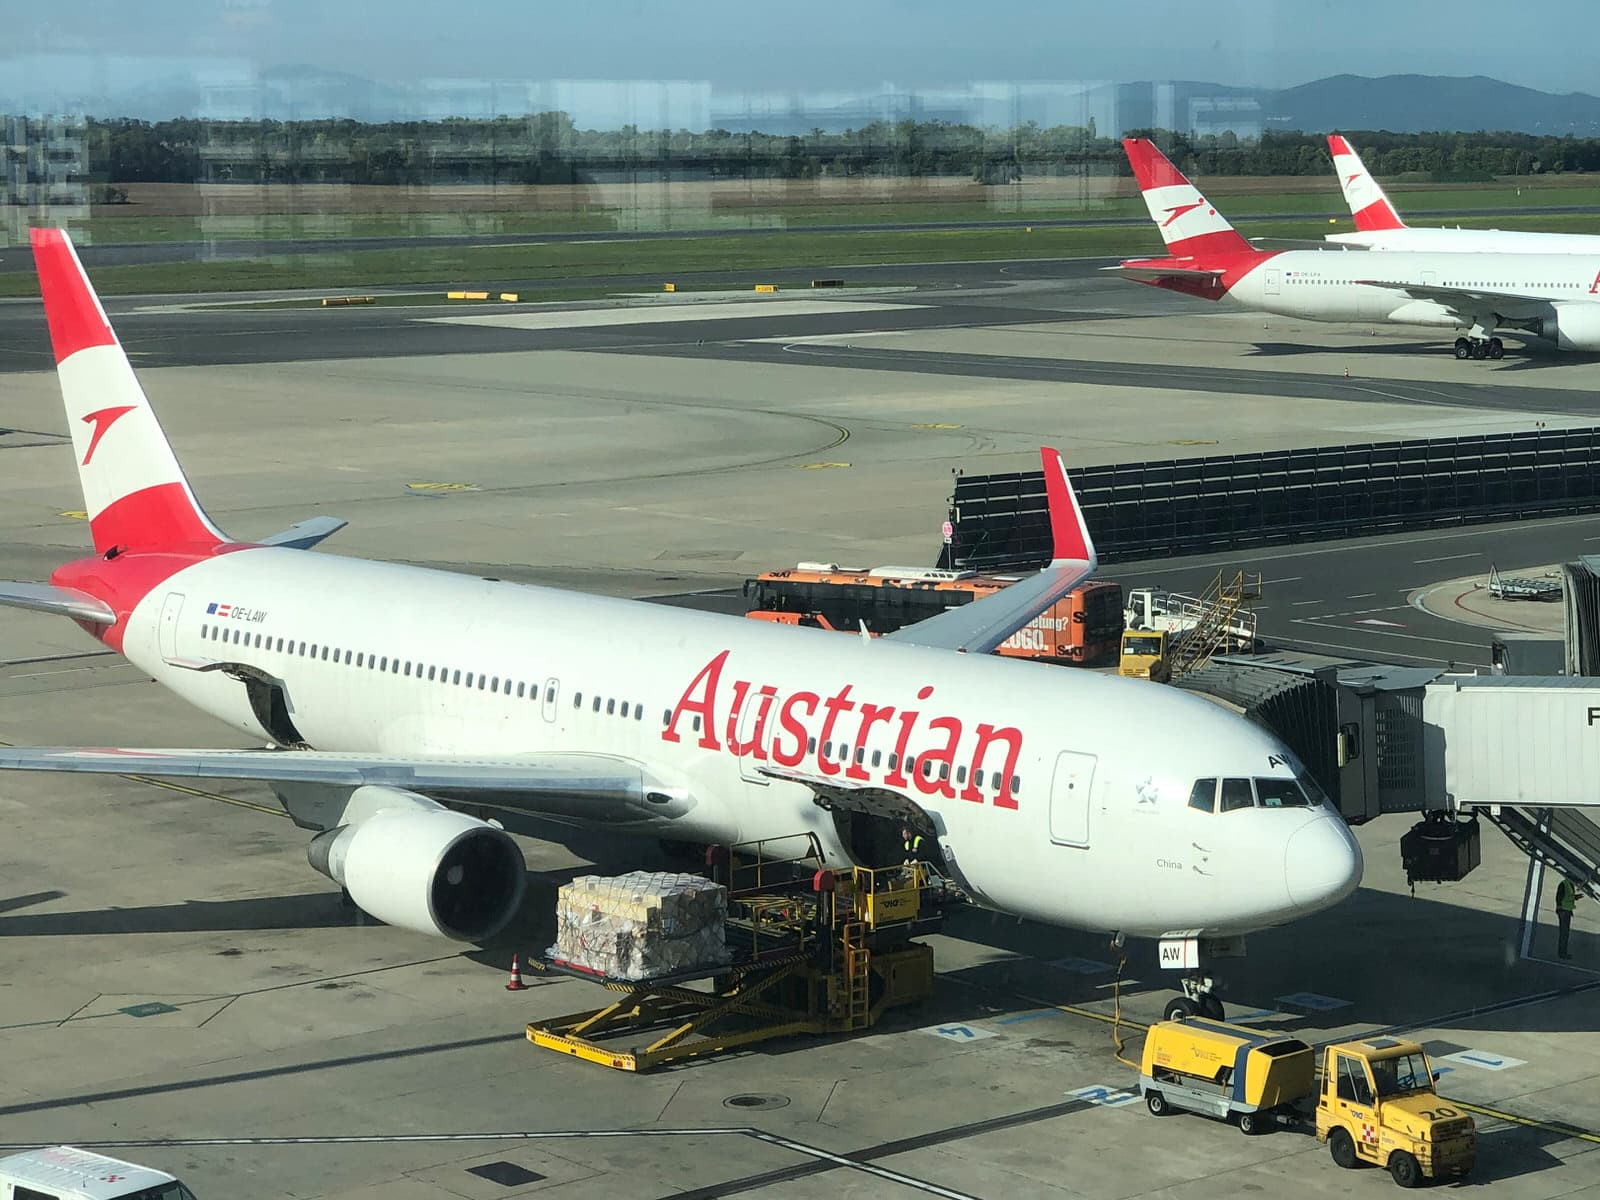 An Austrian Airlines aircraft taking on cargo at the gate at Vienna International Airport